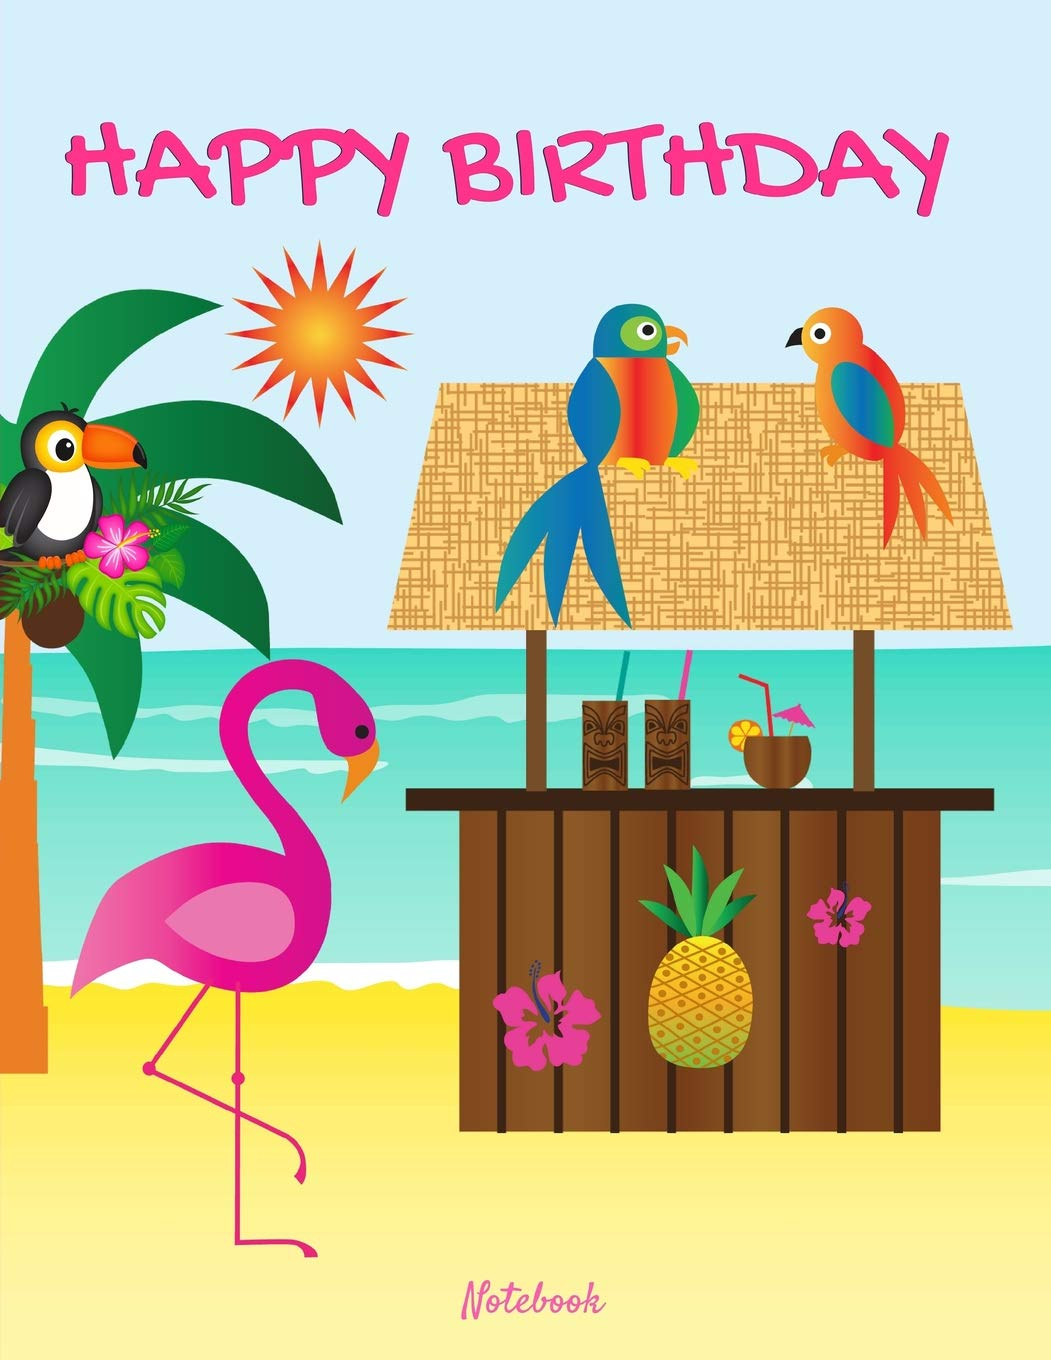 Happy Birthday Notebook: Personalized Message Pink Flamingo Beach.